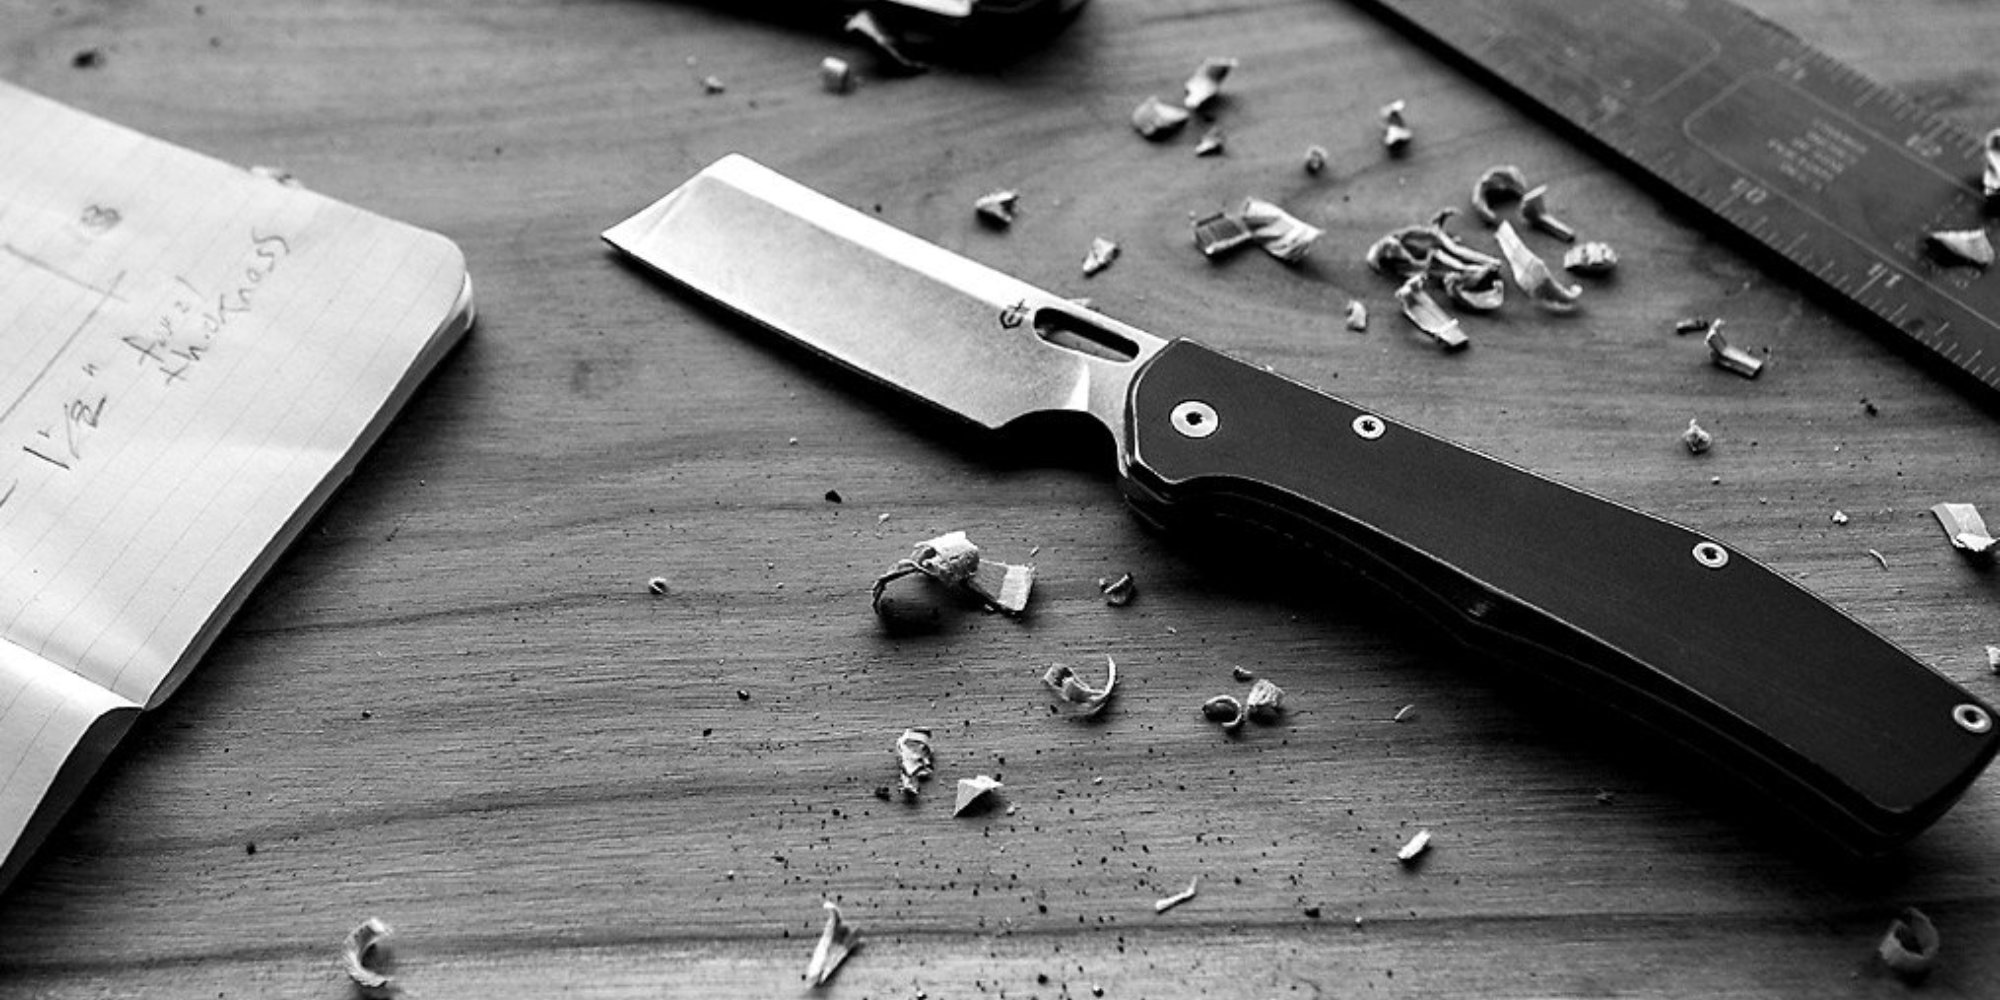 Gerber's Flatiron Folding Cleaver Pocket Knife drops to a new low of $23 (Save 35%)